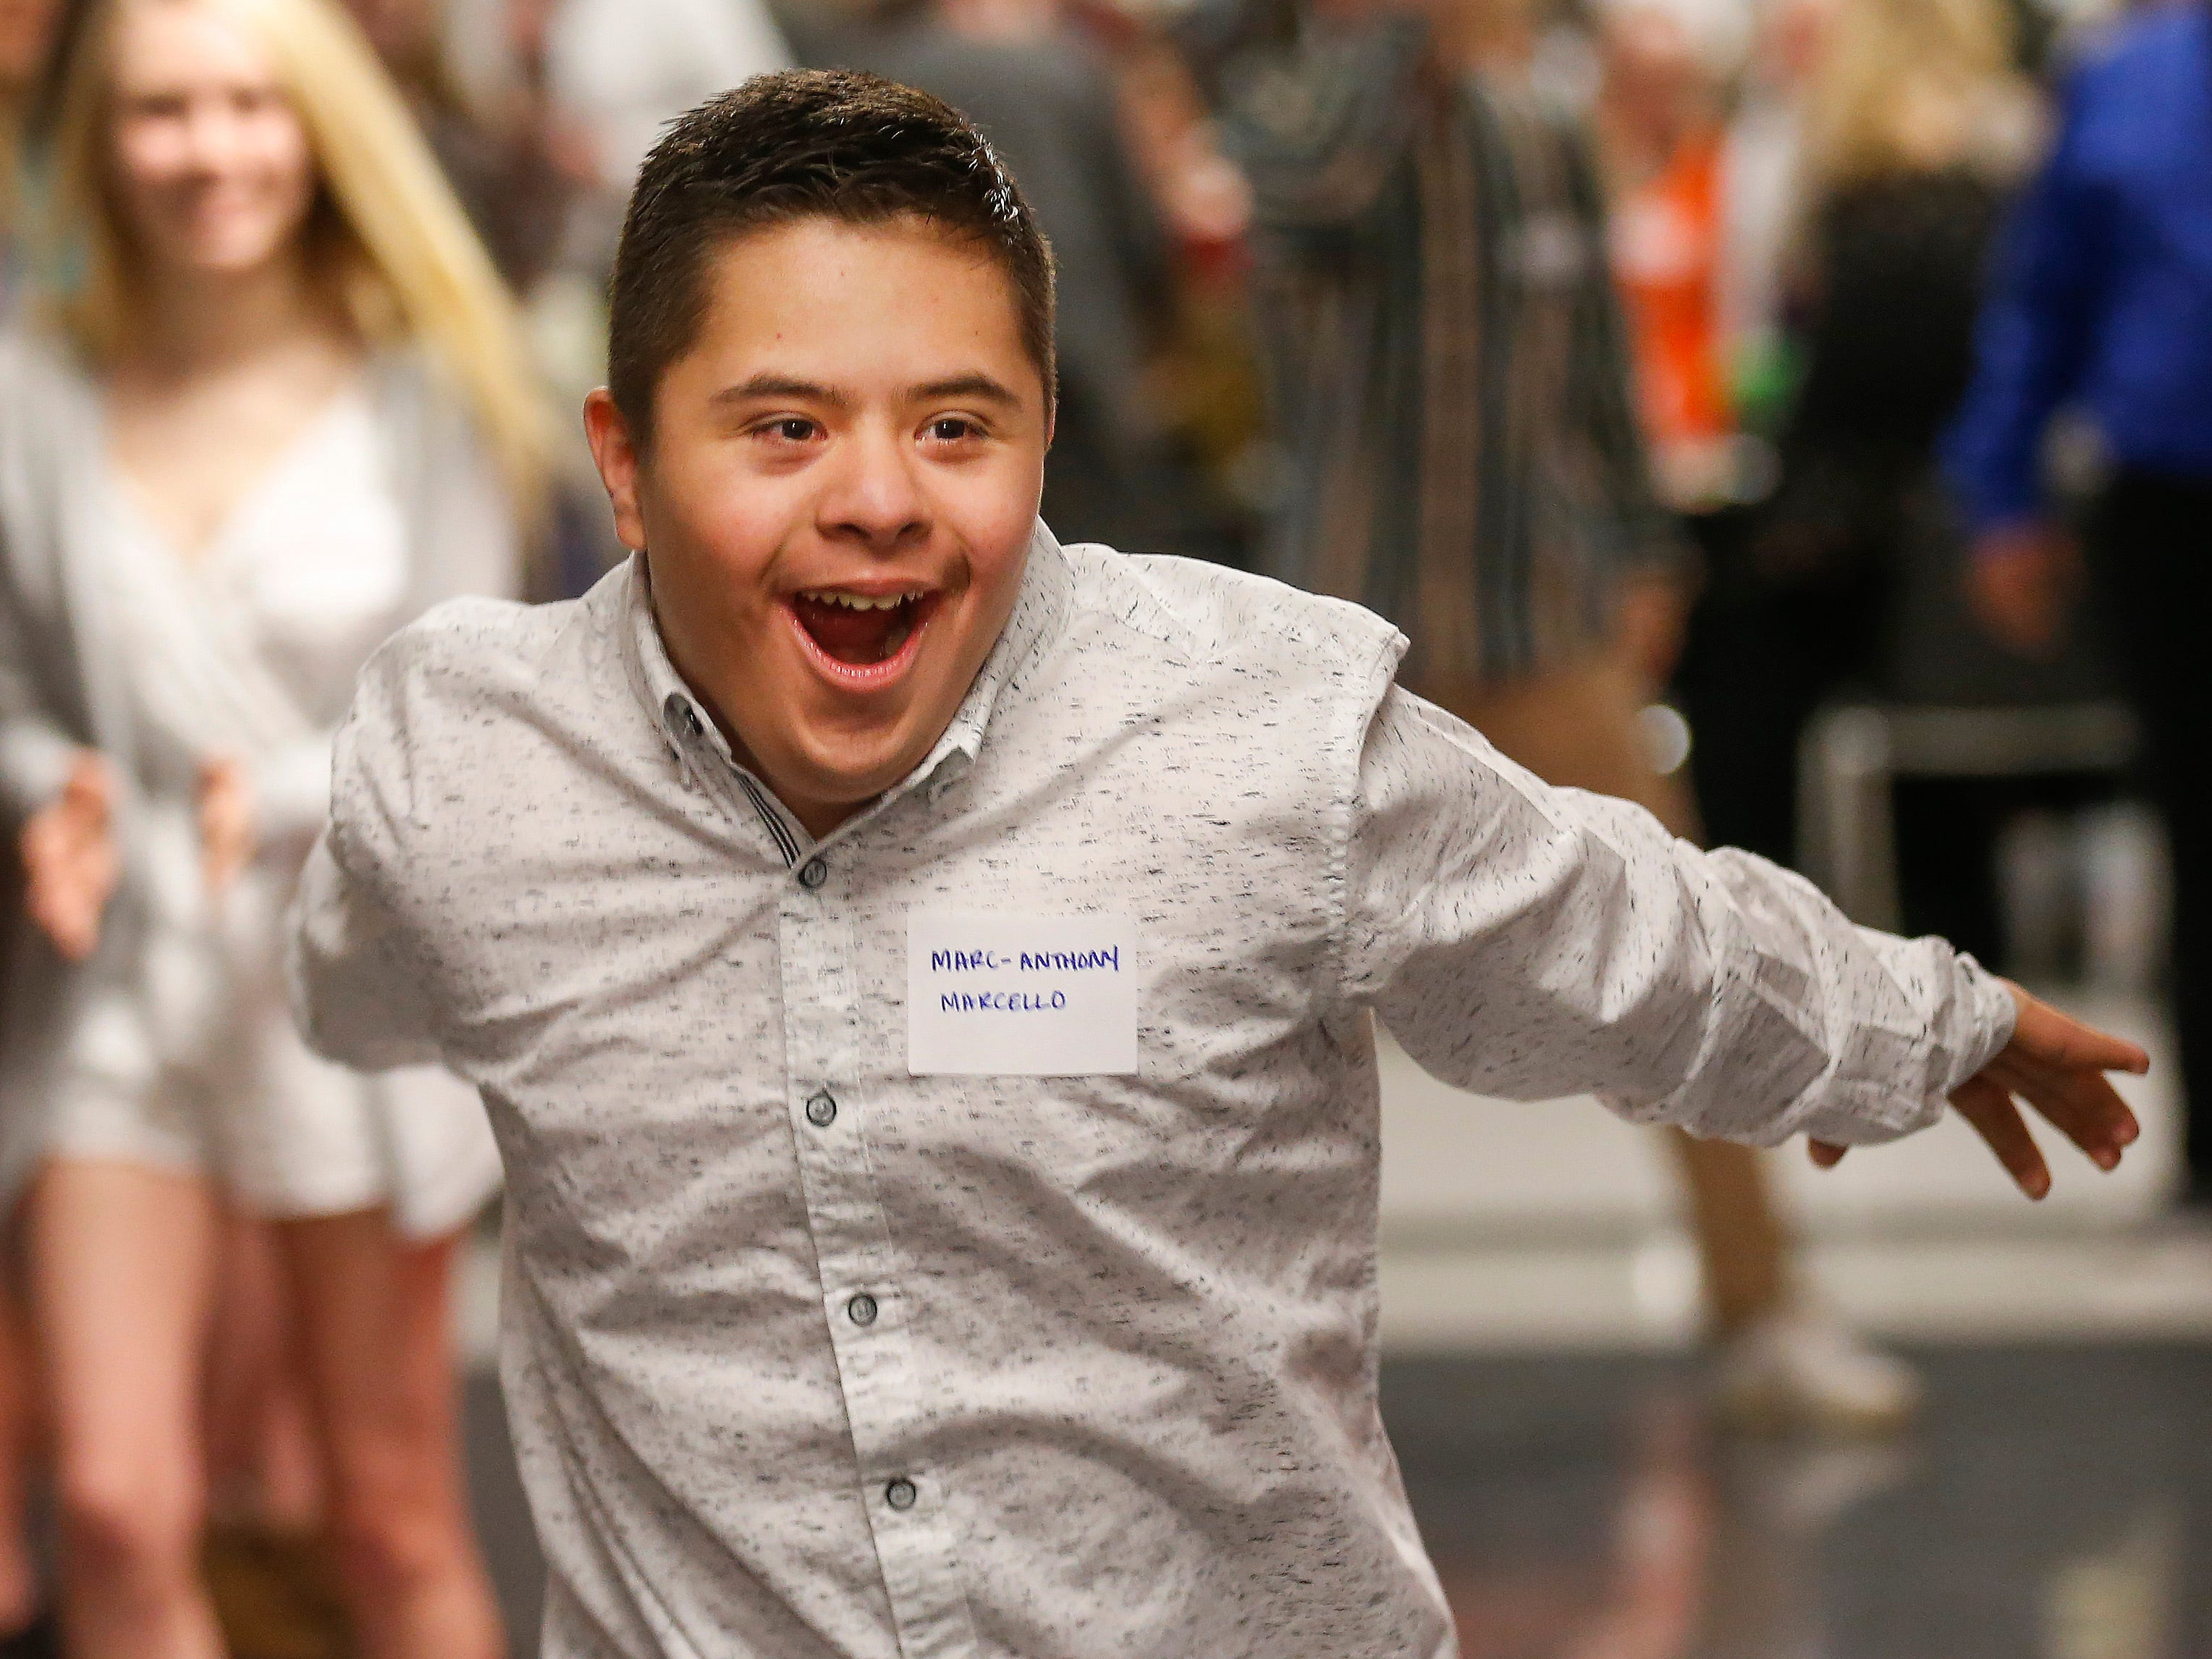 Marc-Anthony Marcello laughs as he runs down the red carpet at the Camp Barnabas Snow Ball at Springfield Catholic High School on Saturday, Jan. 26, 2019.